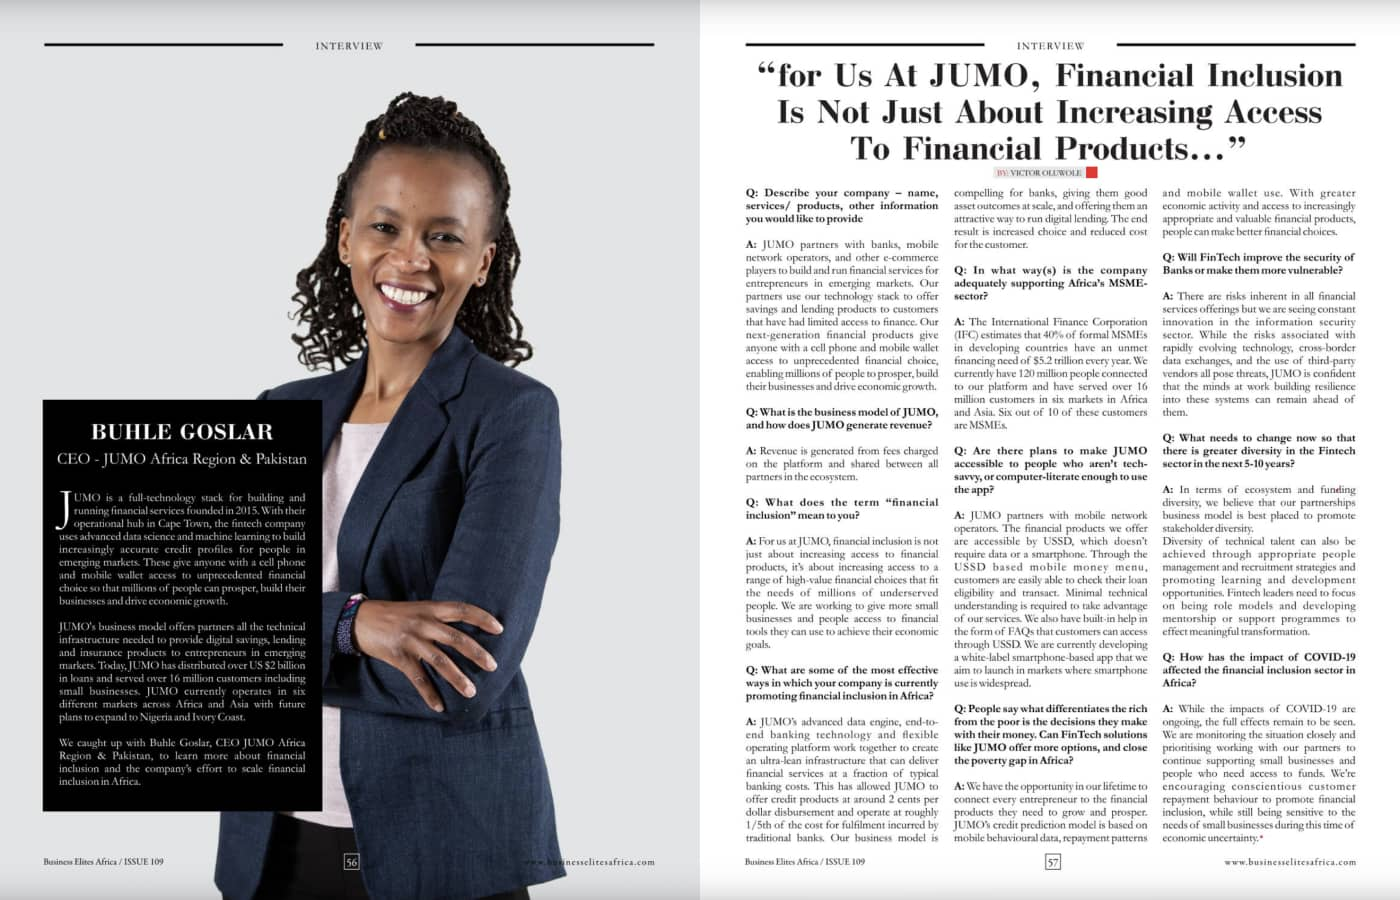 Africa Business Elites interview with Buhle Goslar, JUMO's CEO for the Africa region and Pakistan (Page 56)